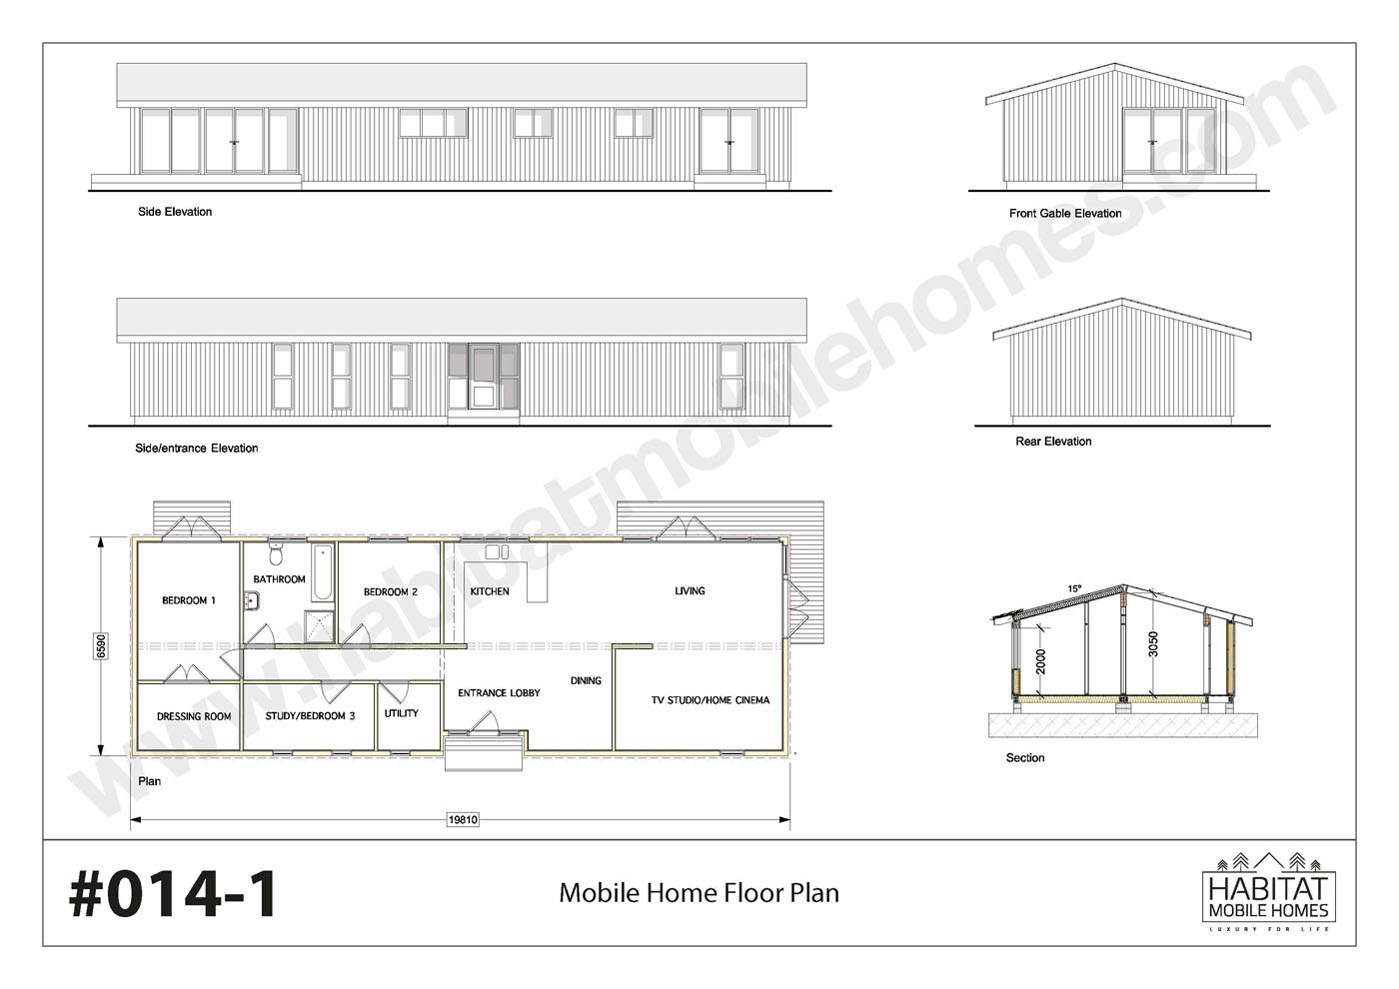 Example Prices Mobile Home Plan 014-1 - Habitat Mobile Homes Ltd on mobile home art, mobile home texture, mobile home pencil, mobile home miniature, mobile home stencil, mobile home project, mobile home charm, mobile home black and white, mobile home space, mobile home sculpture, mobile home australia, mobile home inspiration, mobile home photography, mobile home flash, mobile home travel, mobile home work, mobile home light, mobile home skins, mobile home glass, mobile home comedy,